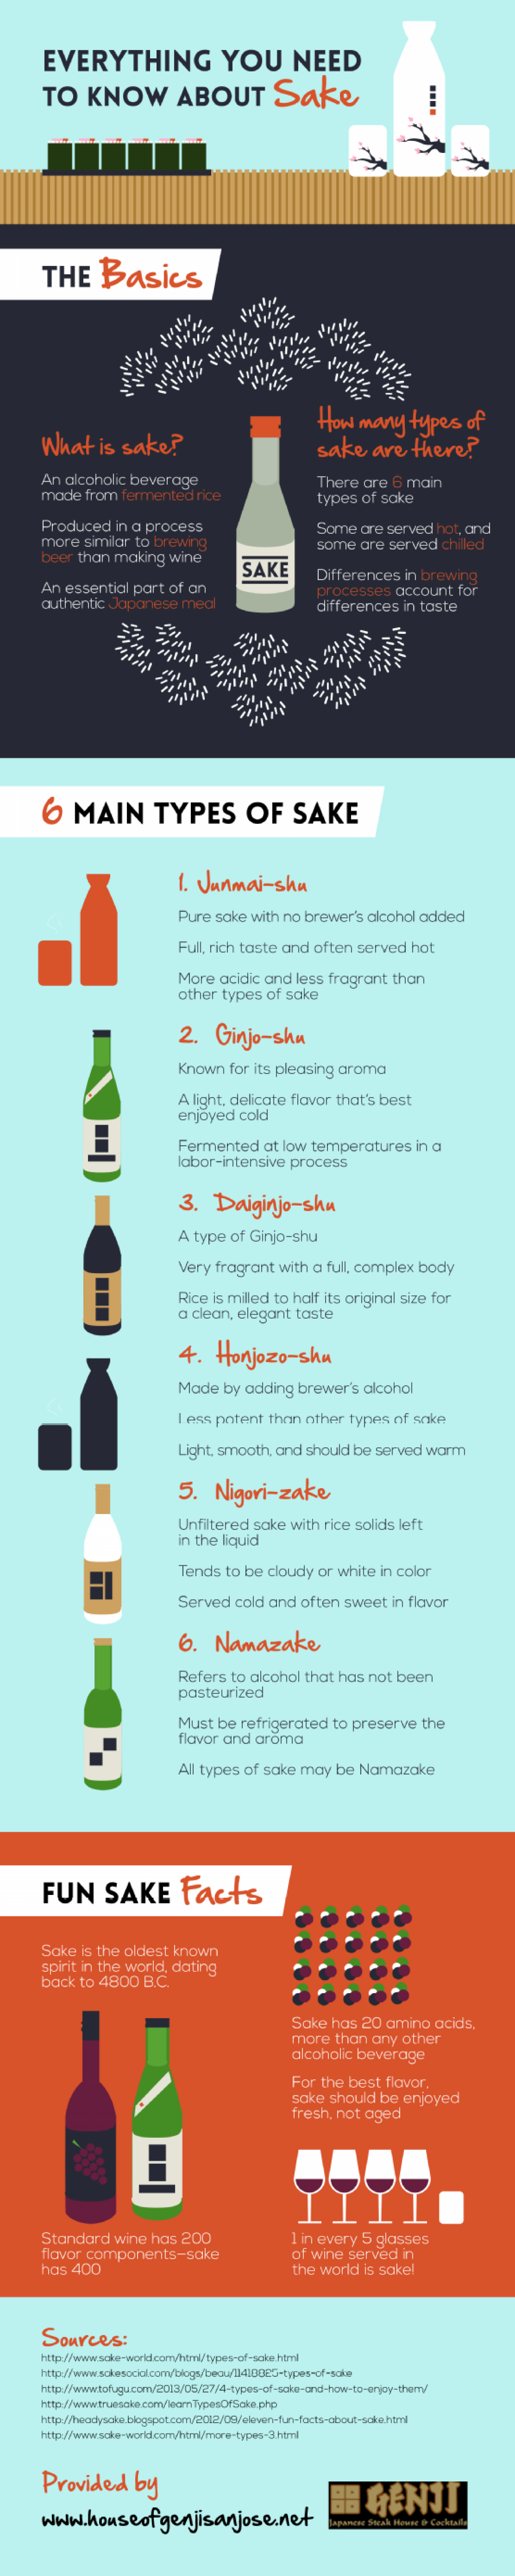 Everything You Need to Know About Sake Infographic